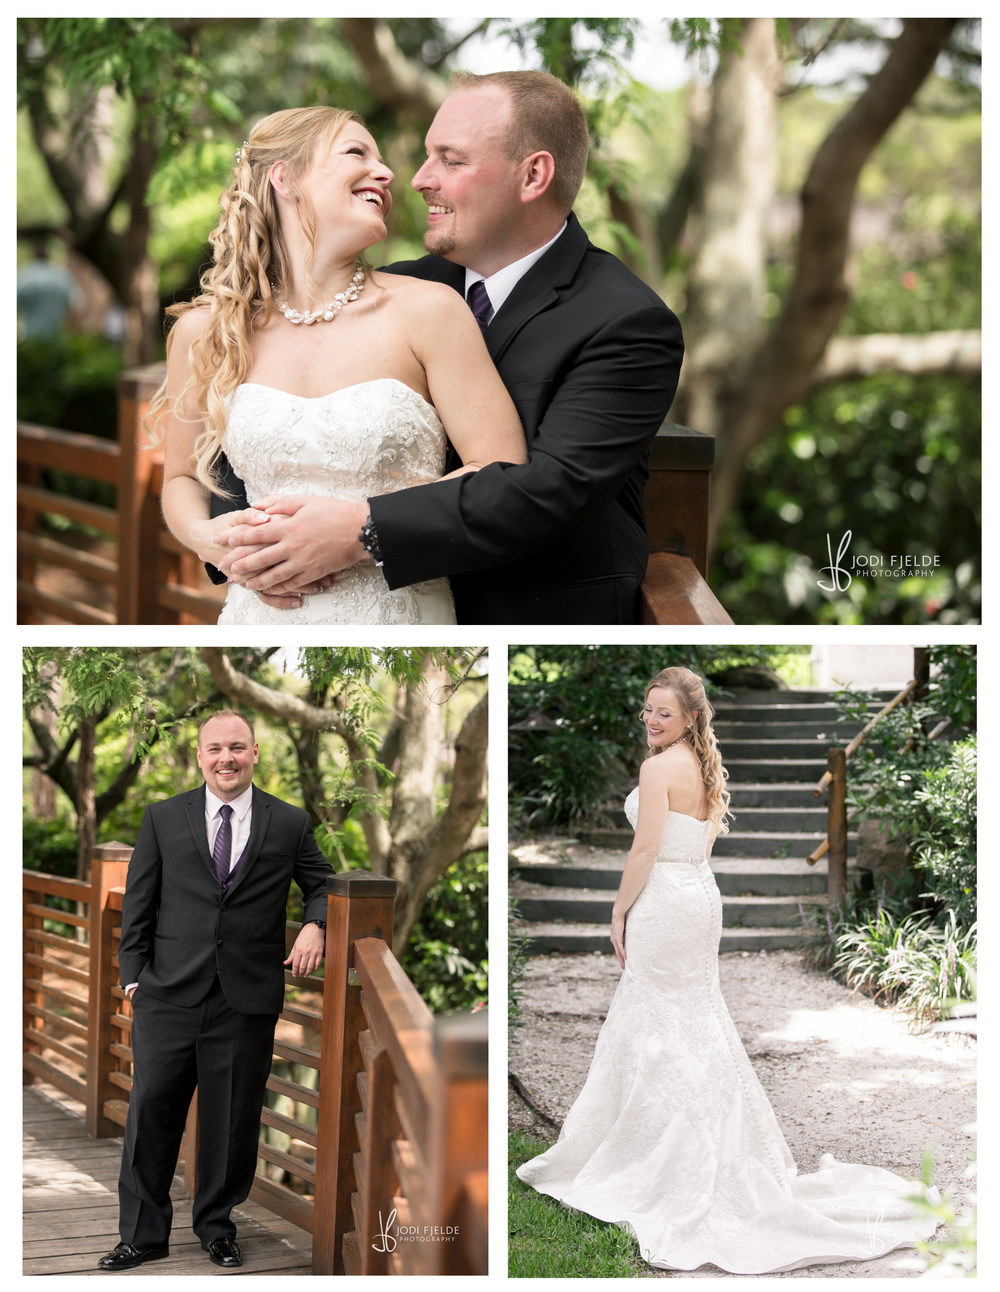 Morikami_Delray_Beach_Golf_Club_Wedding_Jenna & Brian 14.jpg